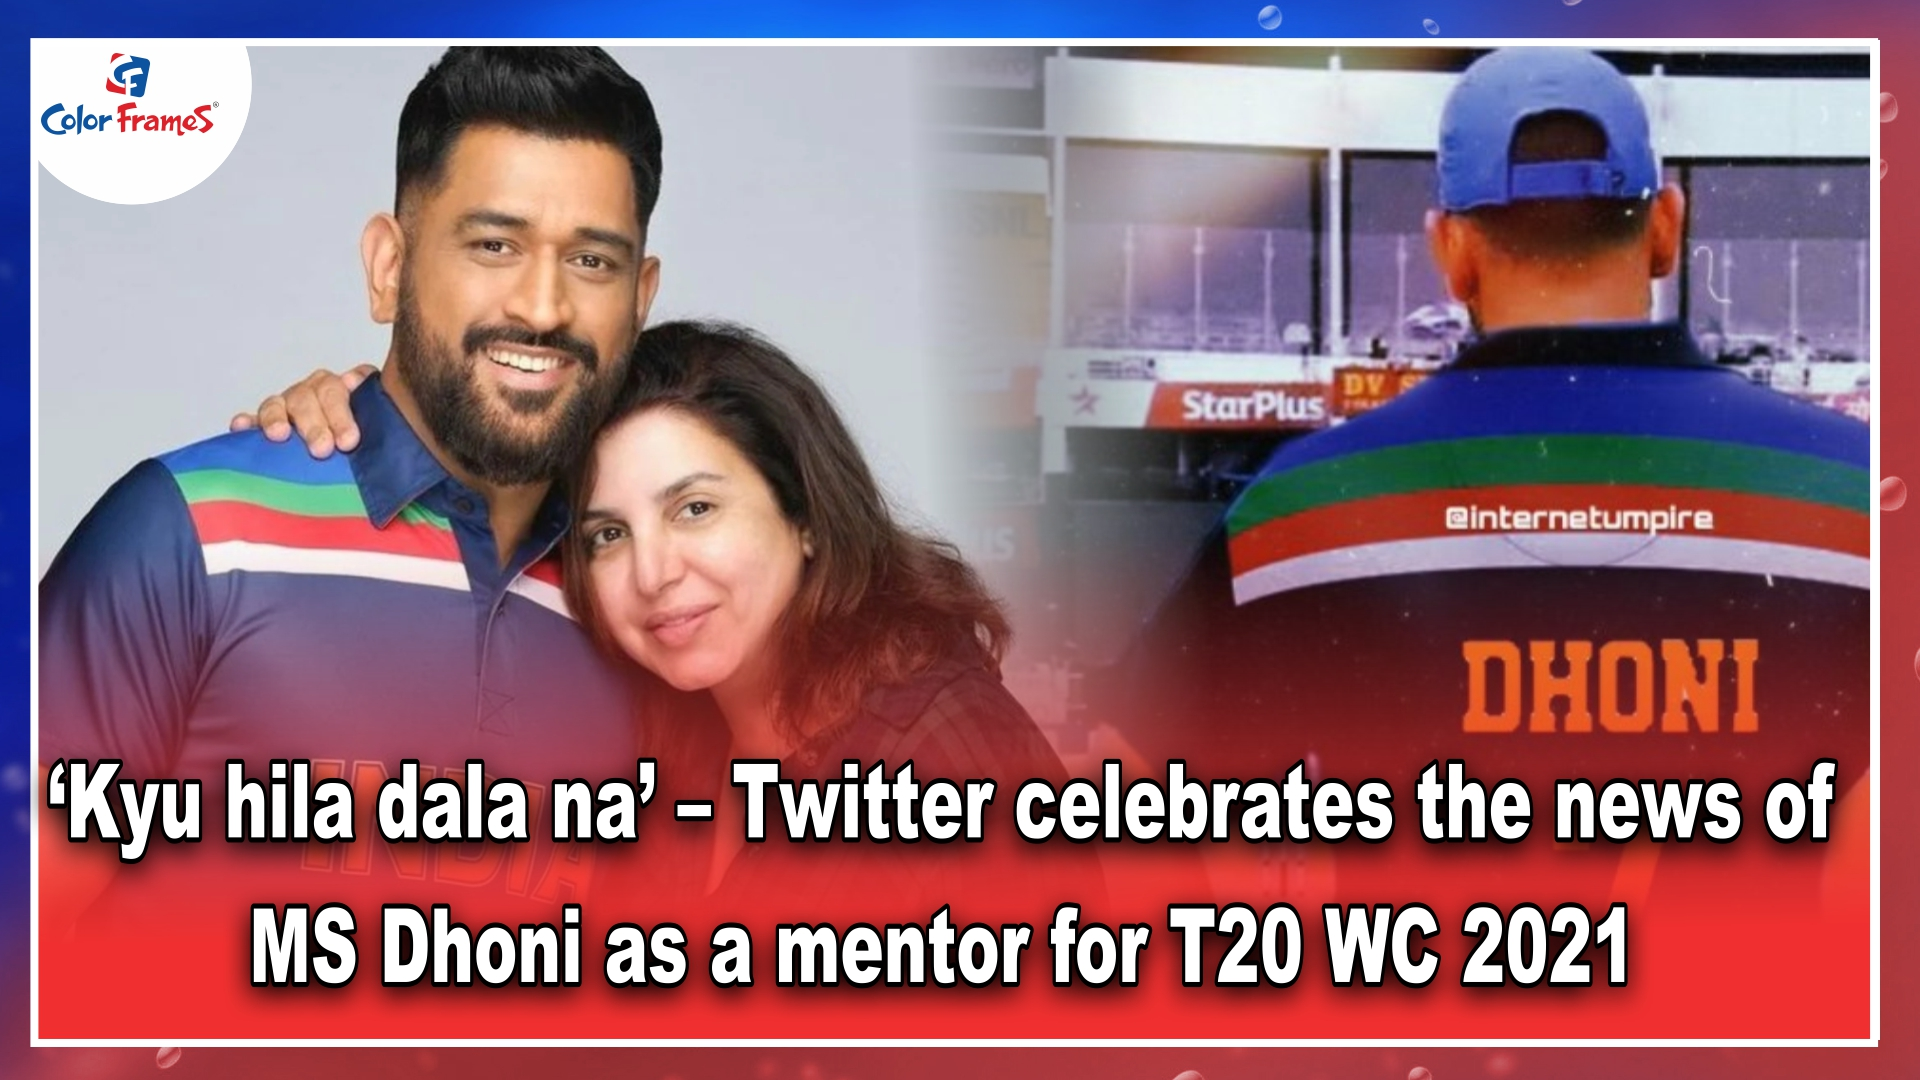 'Kyu hila dala na' – Twitter celebrates the news of MS Dhoni as a mentor for T20 WC 2021